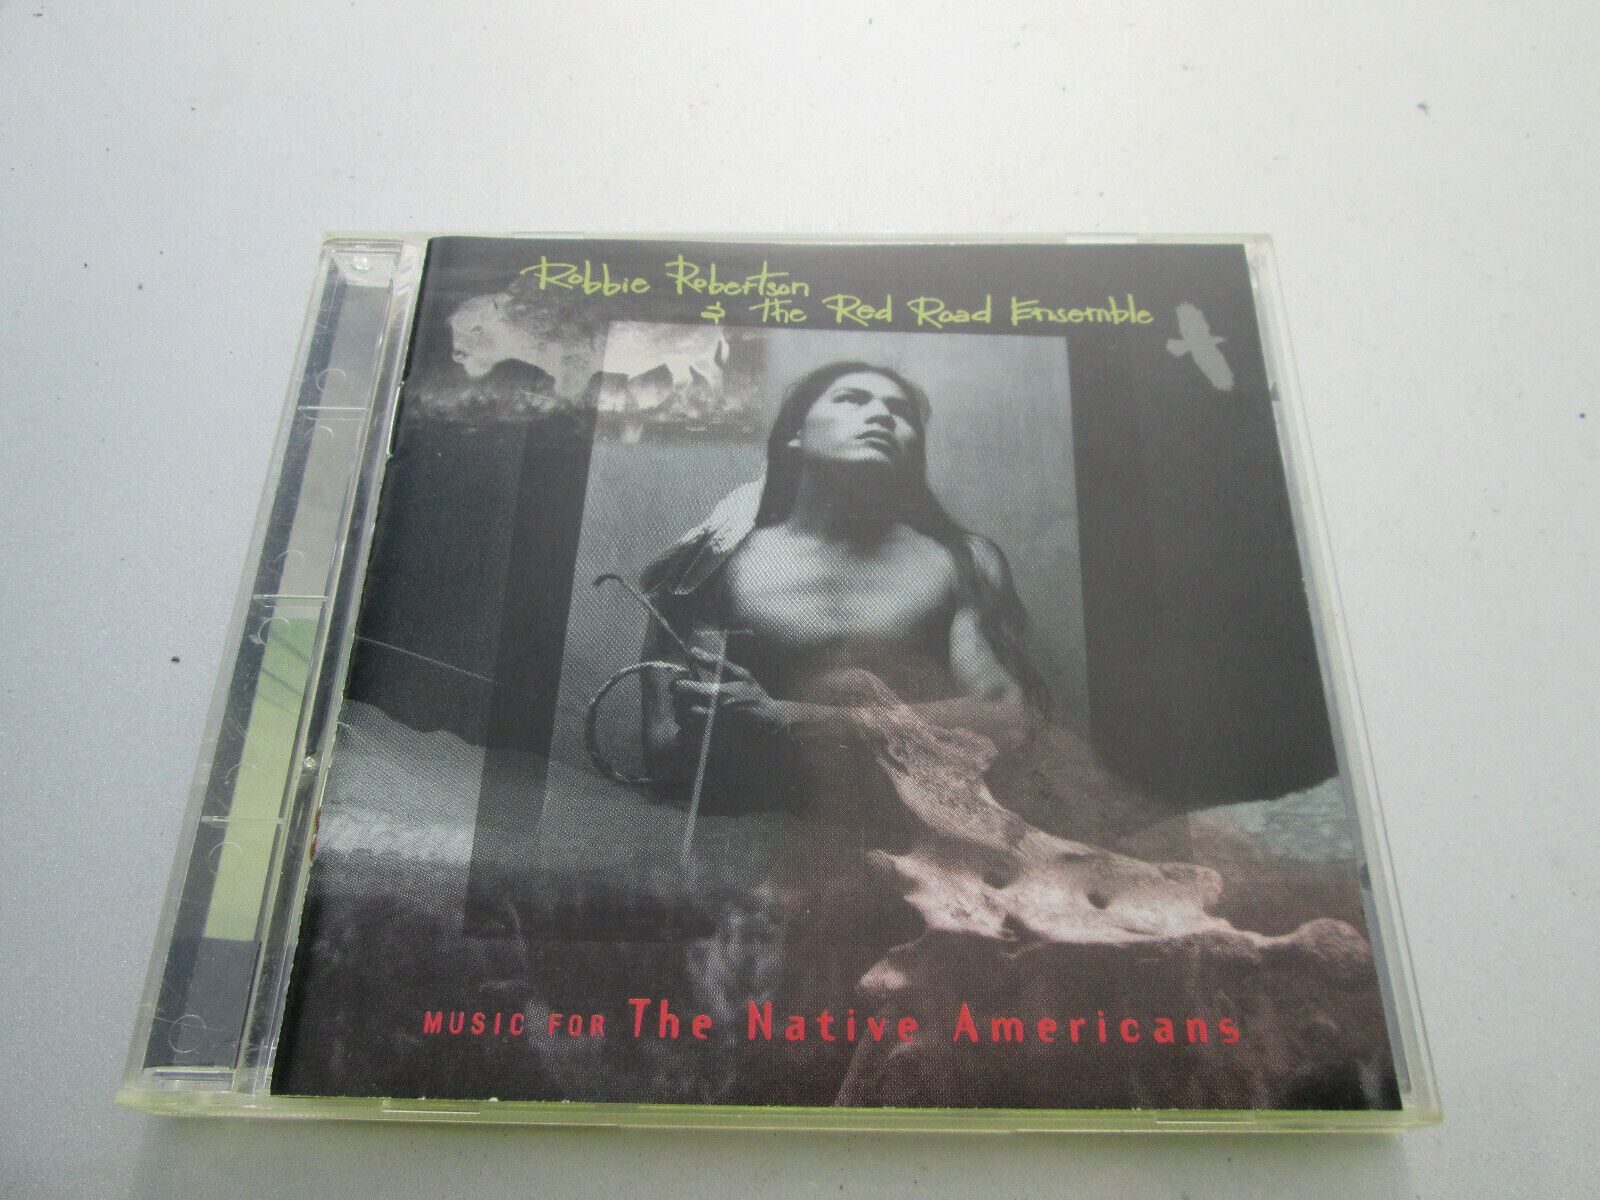 ROBBIE ROBERTSON THE BAND RED ROAD ENSEMBLE CD - NICE CONDITION  - $9.99